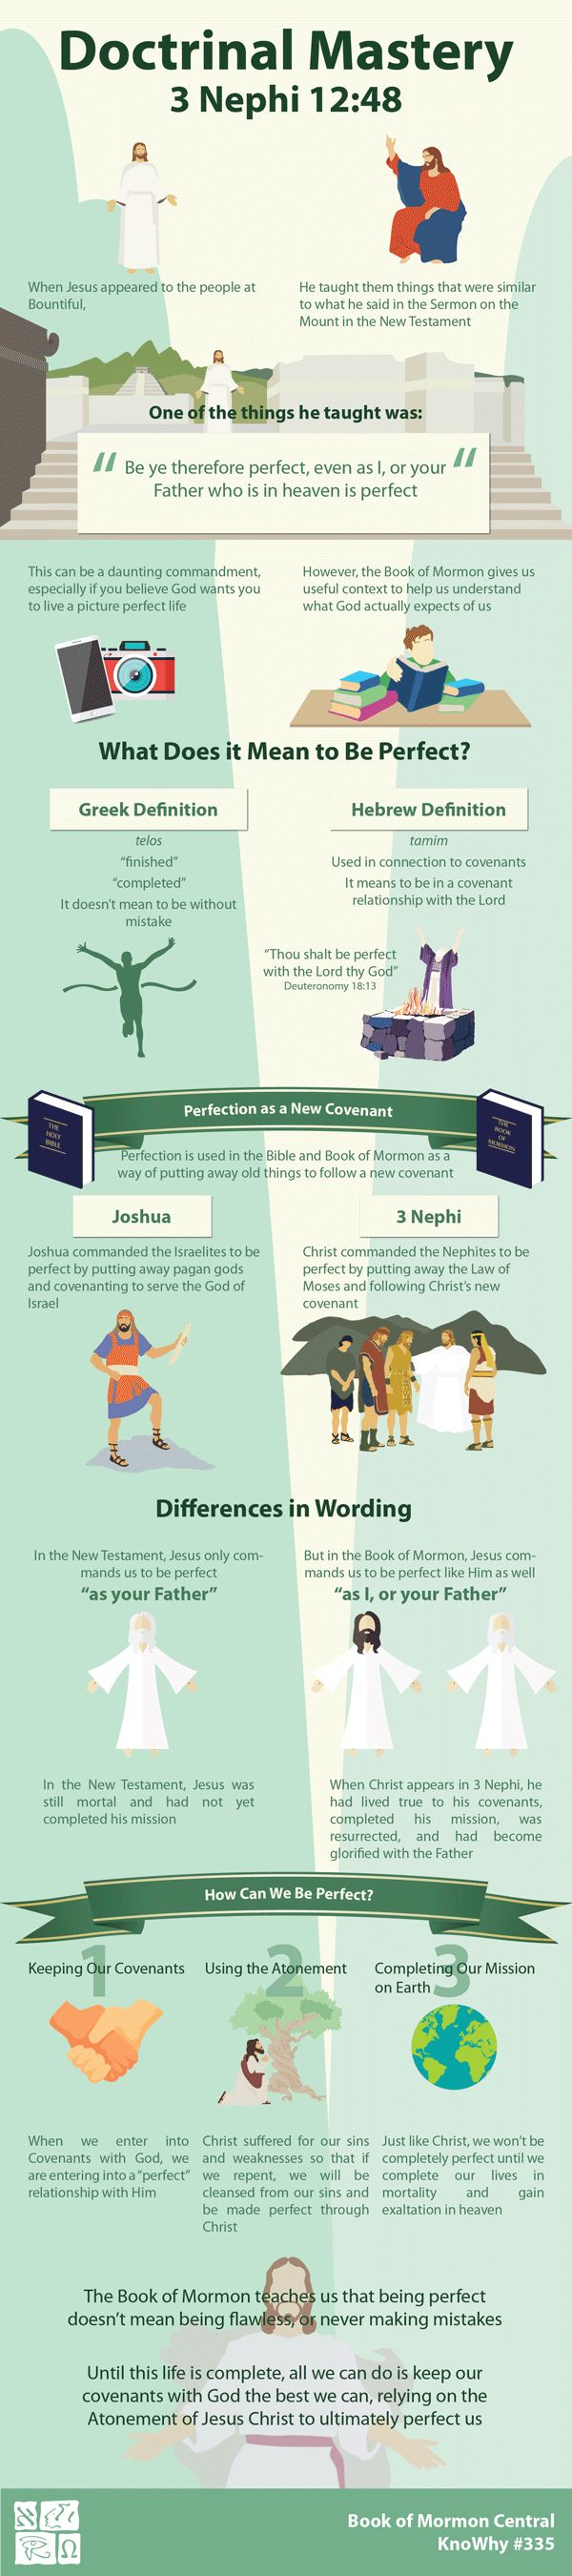 Doctrinal Mastery 3 Nephi 12:48 Infographic by Book of Mormon Central